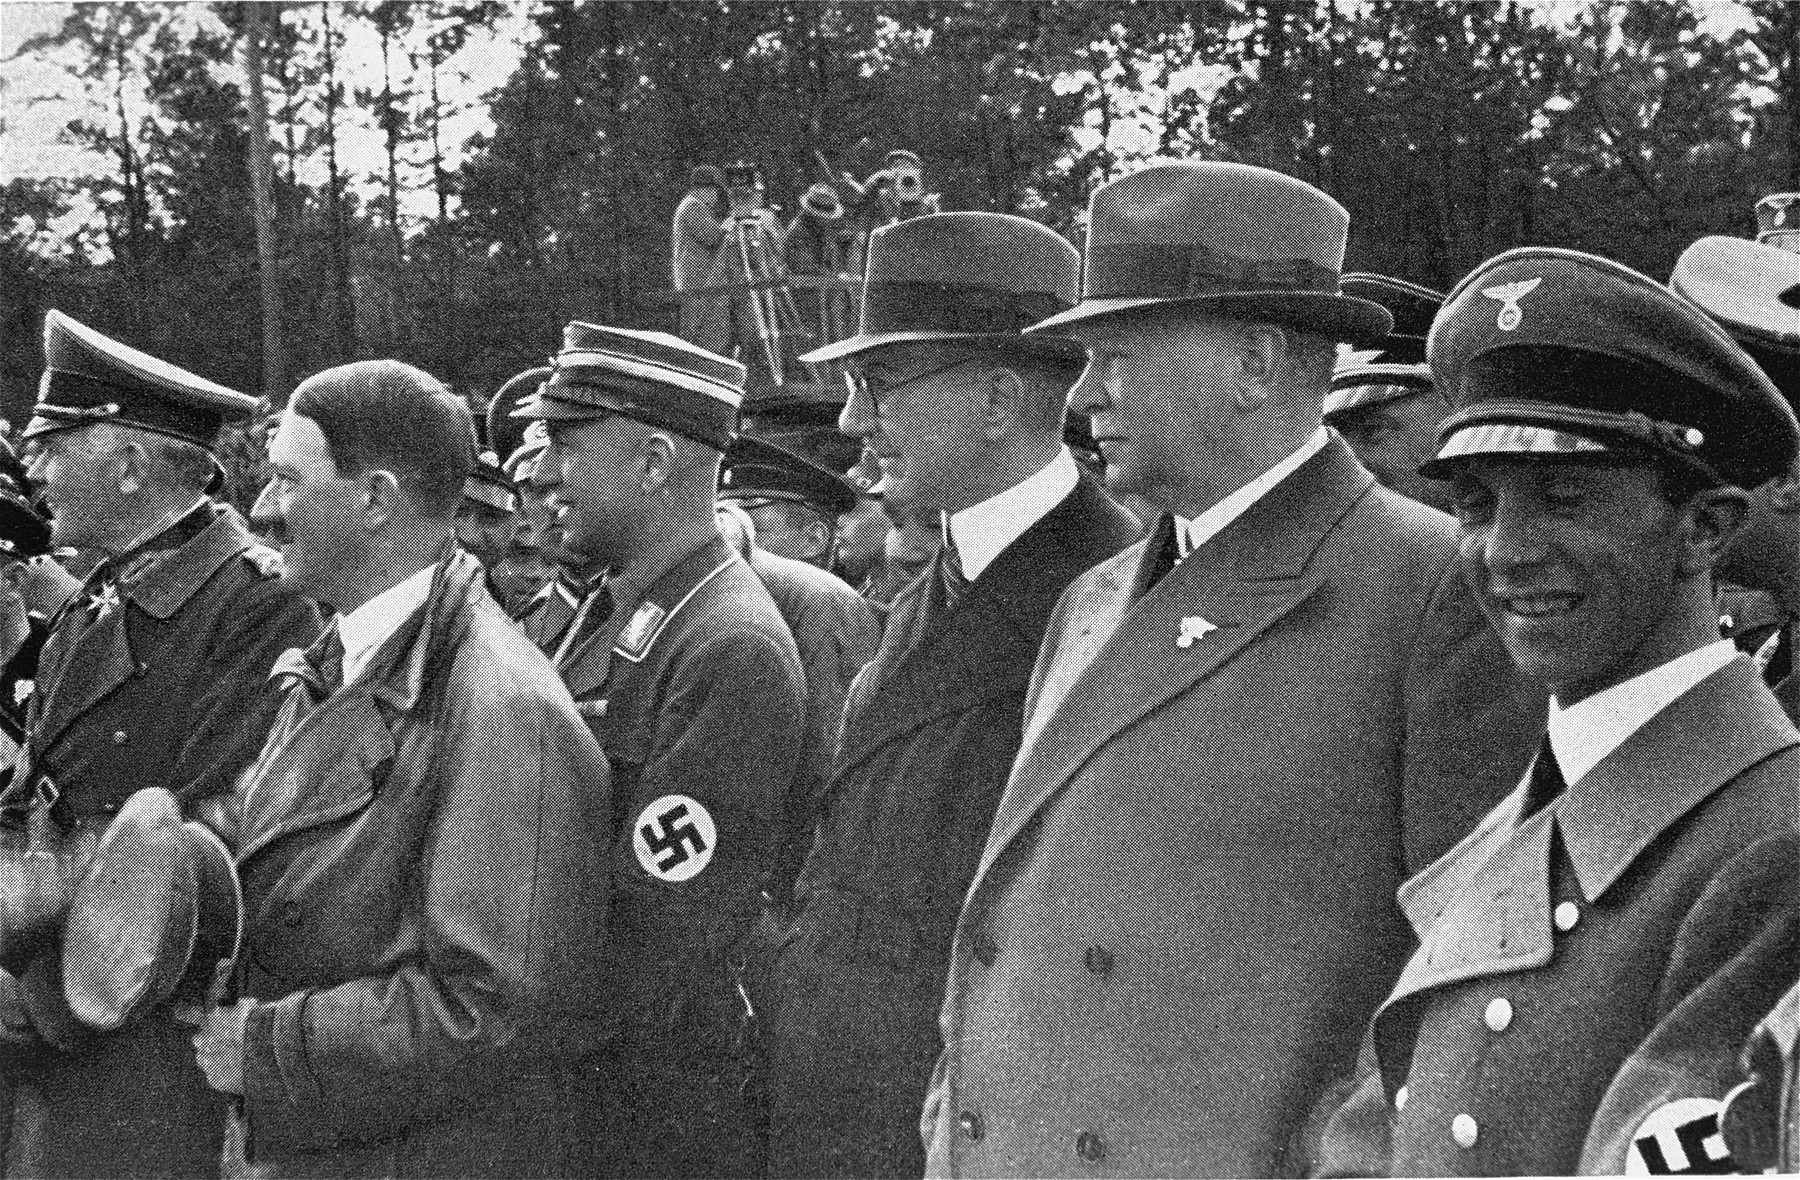 Adolf Hitler attends the opening of the autobahn route between Frankfurt and Darmstadt.  Pictured from left to right are: Werner von Blomberg, Hitler, Fritz Todt, Hjalmar Schacht, Julius Dorpmueller, and Joseph Goebbels.